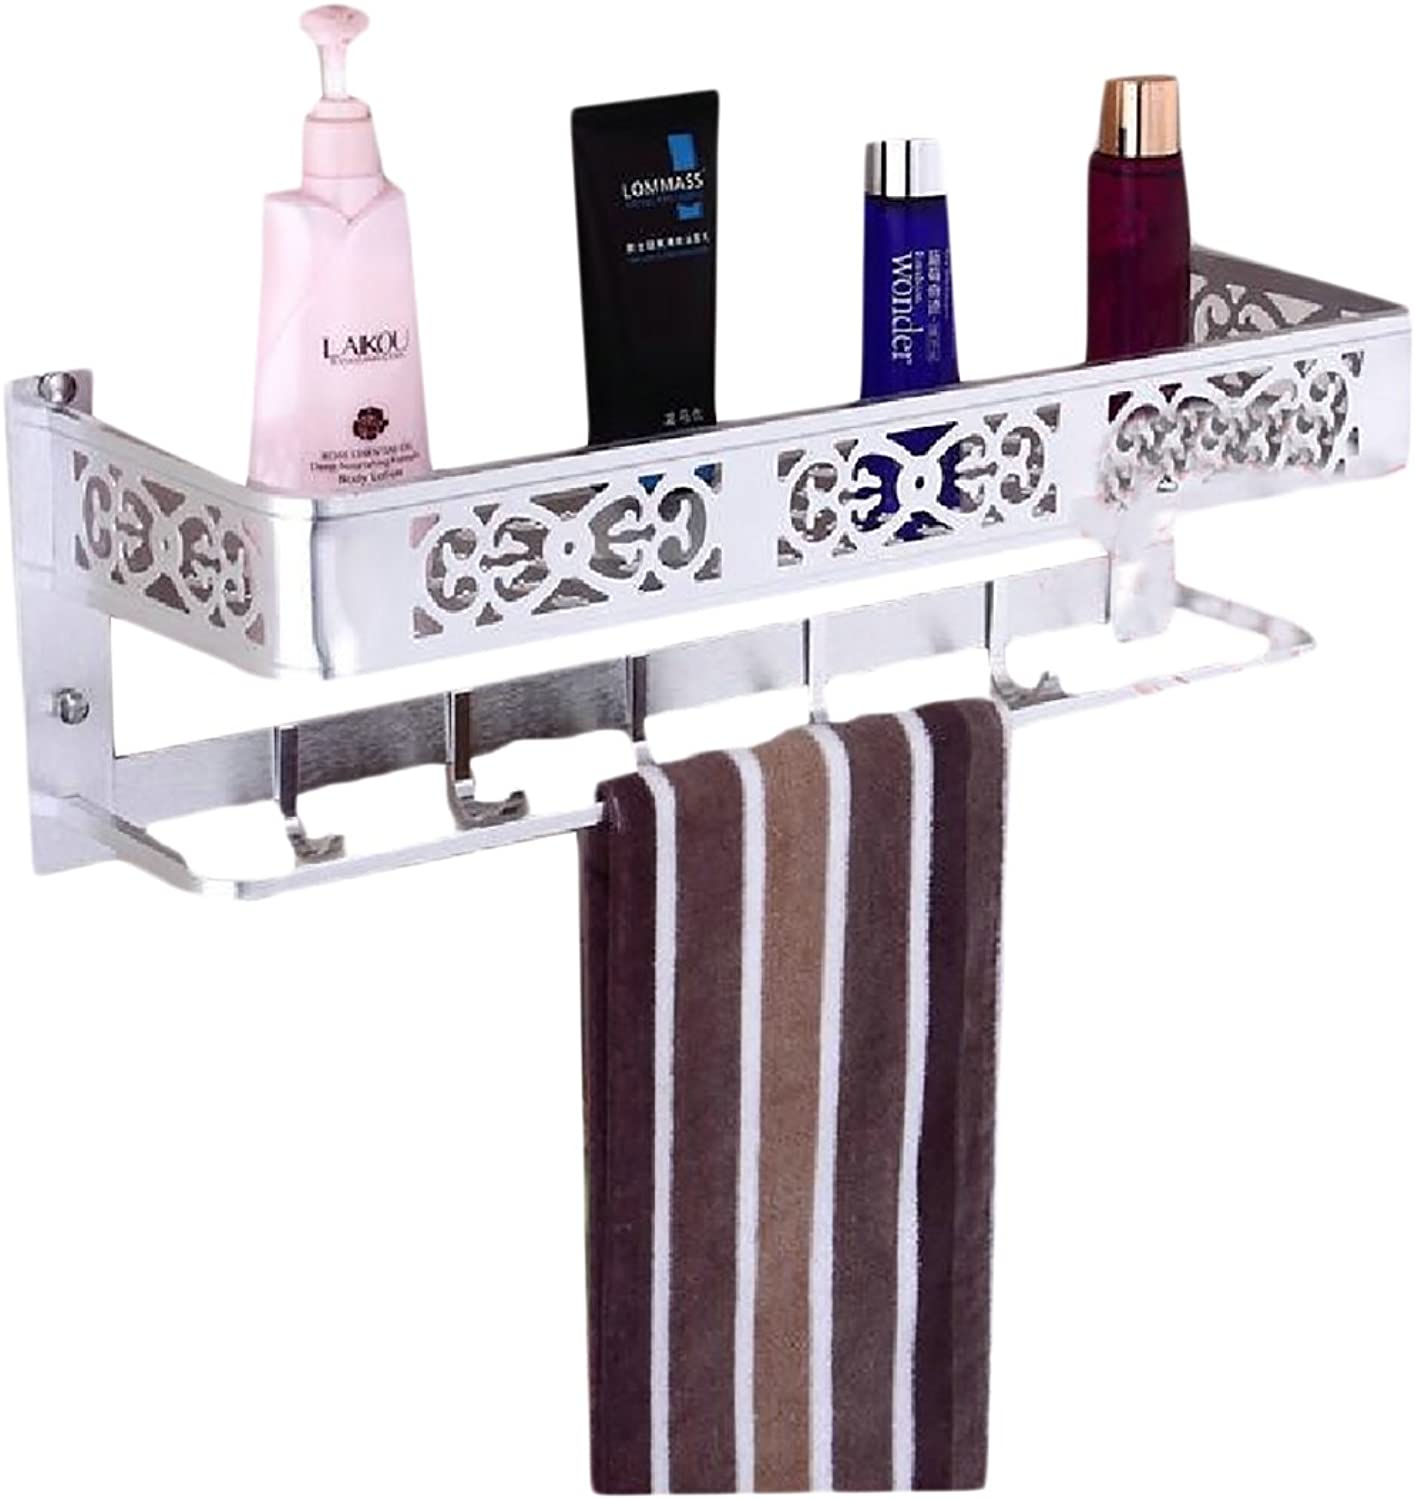 XINHE Shelving Expandable Wide Open Wire Supreme 2 Tier Fit-and-Flare Storage Rack AS1 2 Shelves